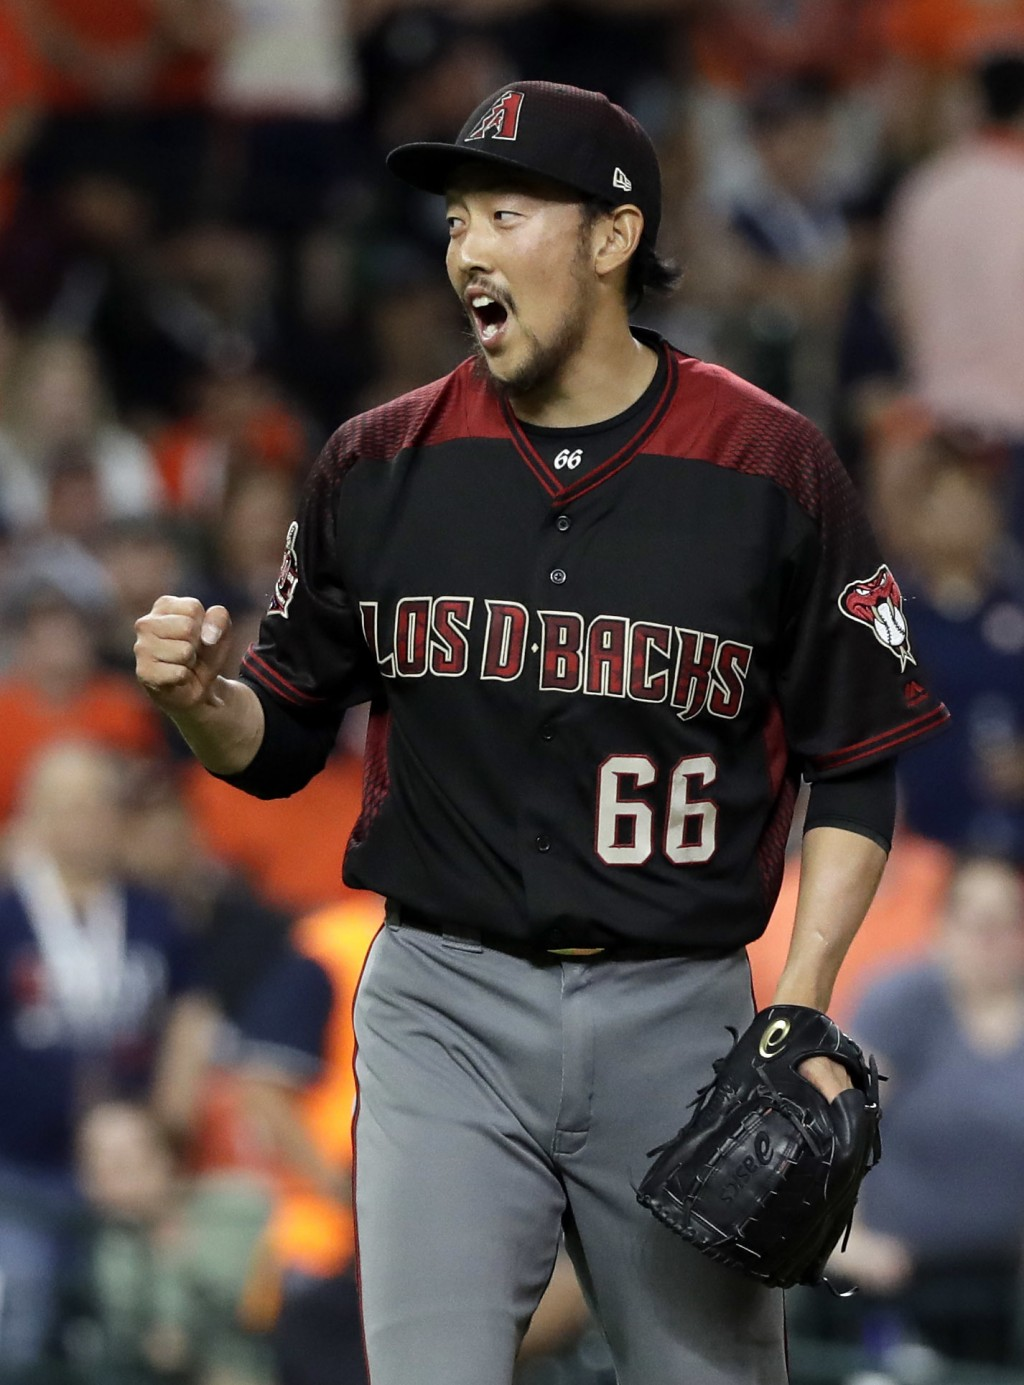 Arizona Diamondbacks relief pitcher Yoshihisa Hirano (66) reacts after the final out in the ninth inning of a baseball game against the Houston Astros